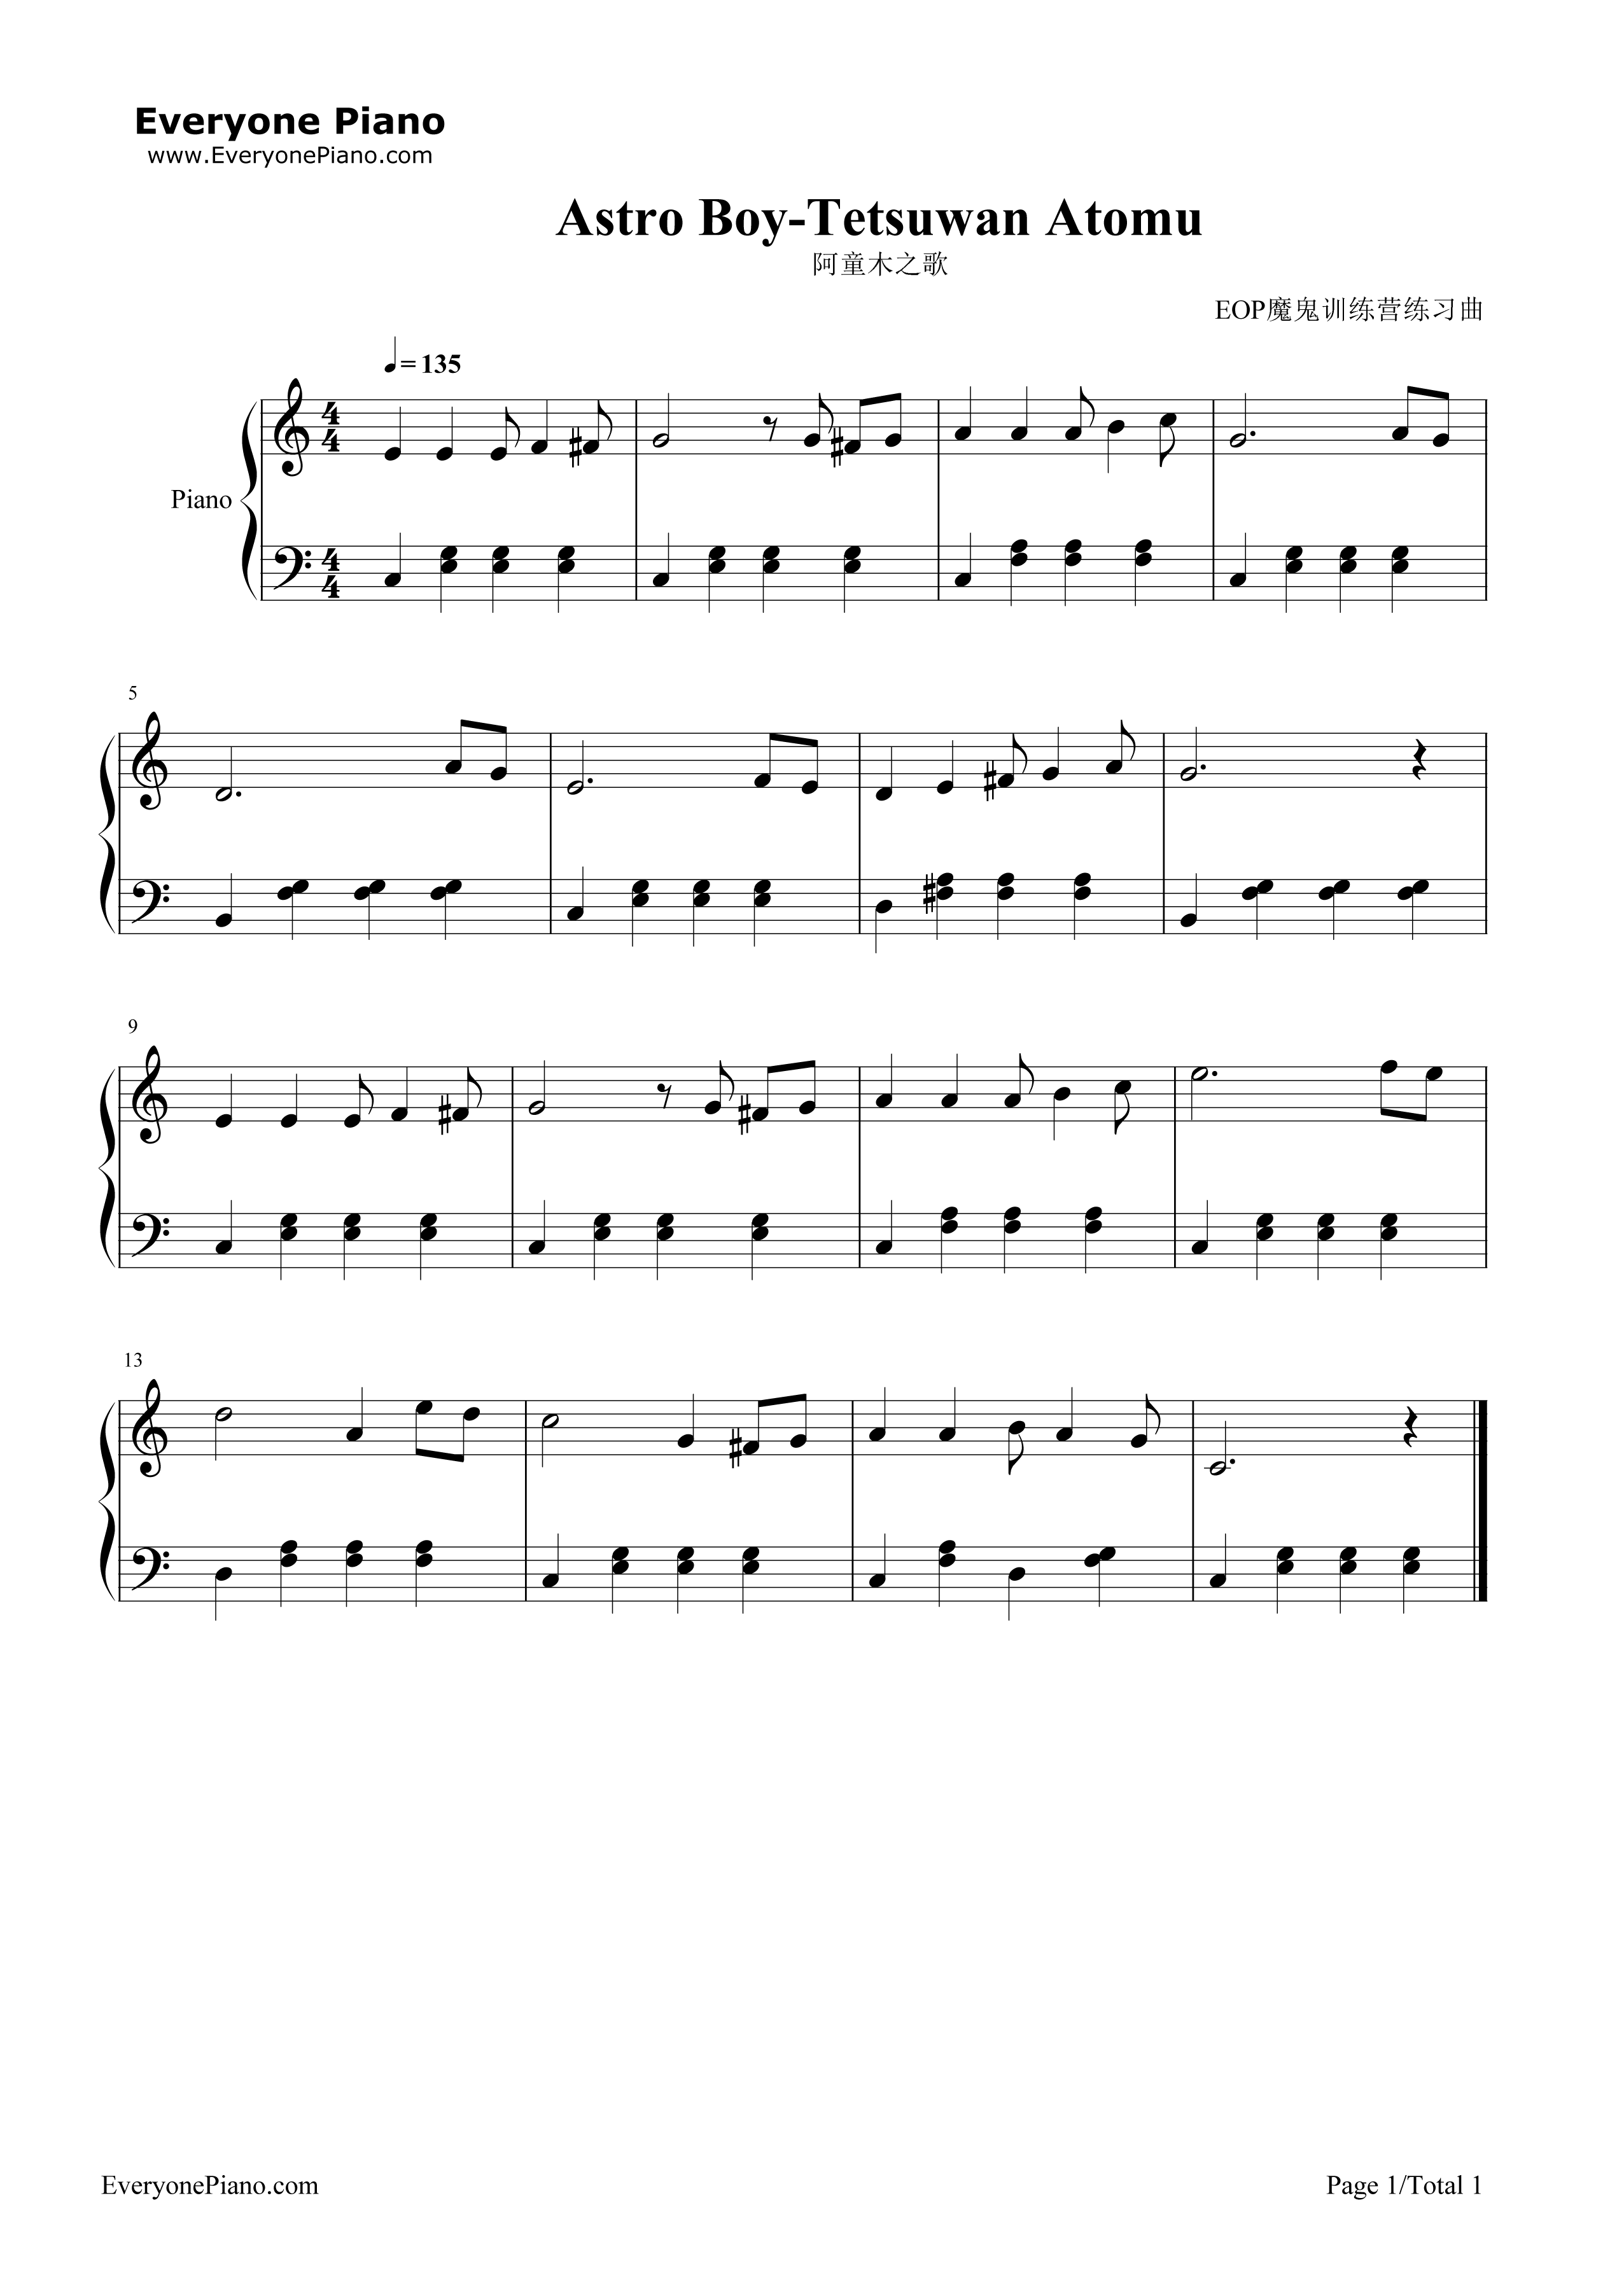 astro boy tetsuwan atomu stave preview 1 free piano sheet music